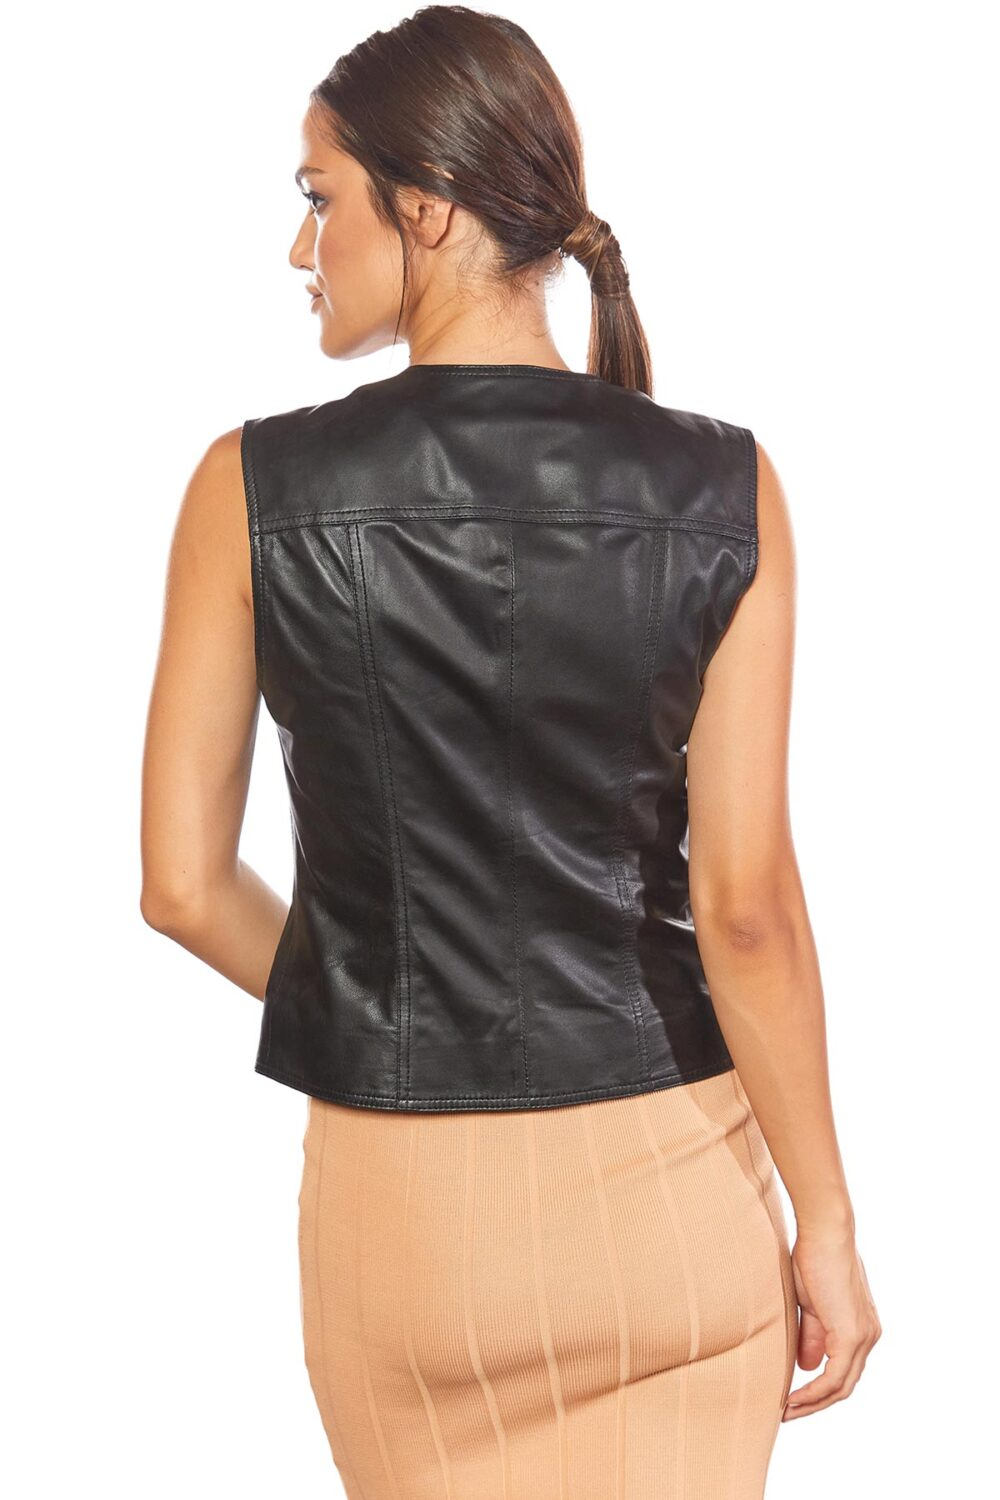 women's incredible black leather vest